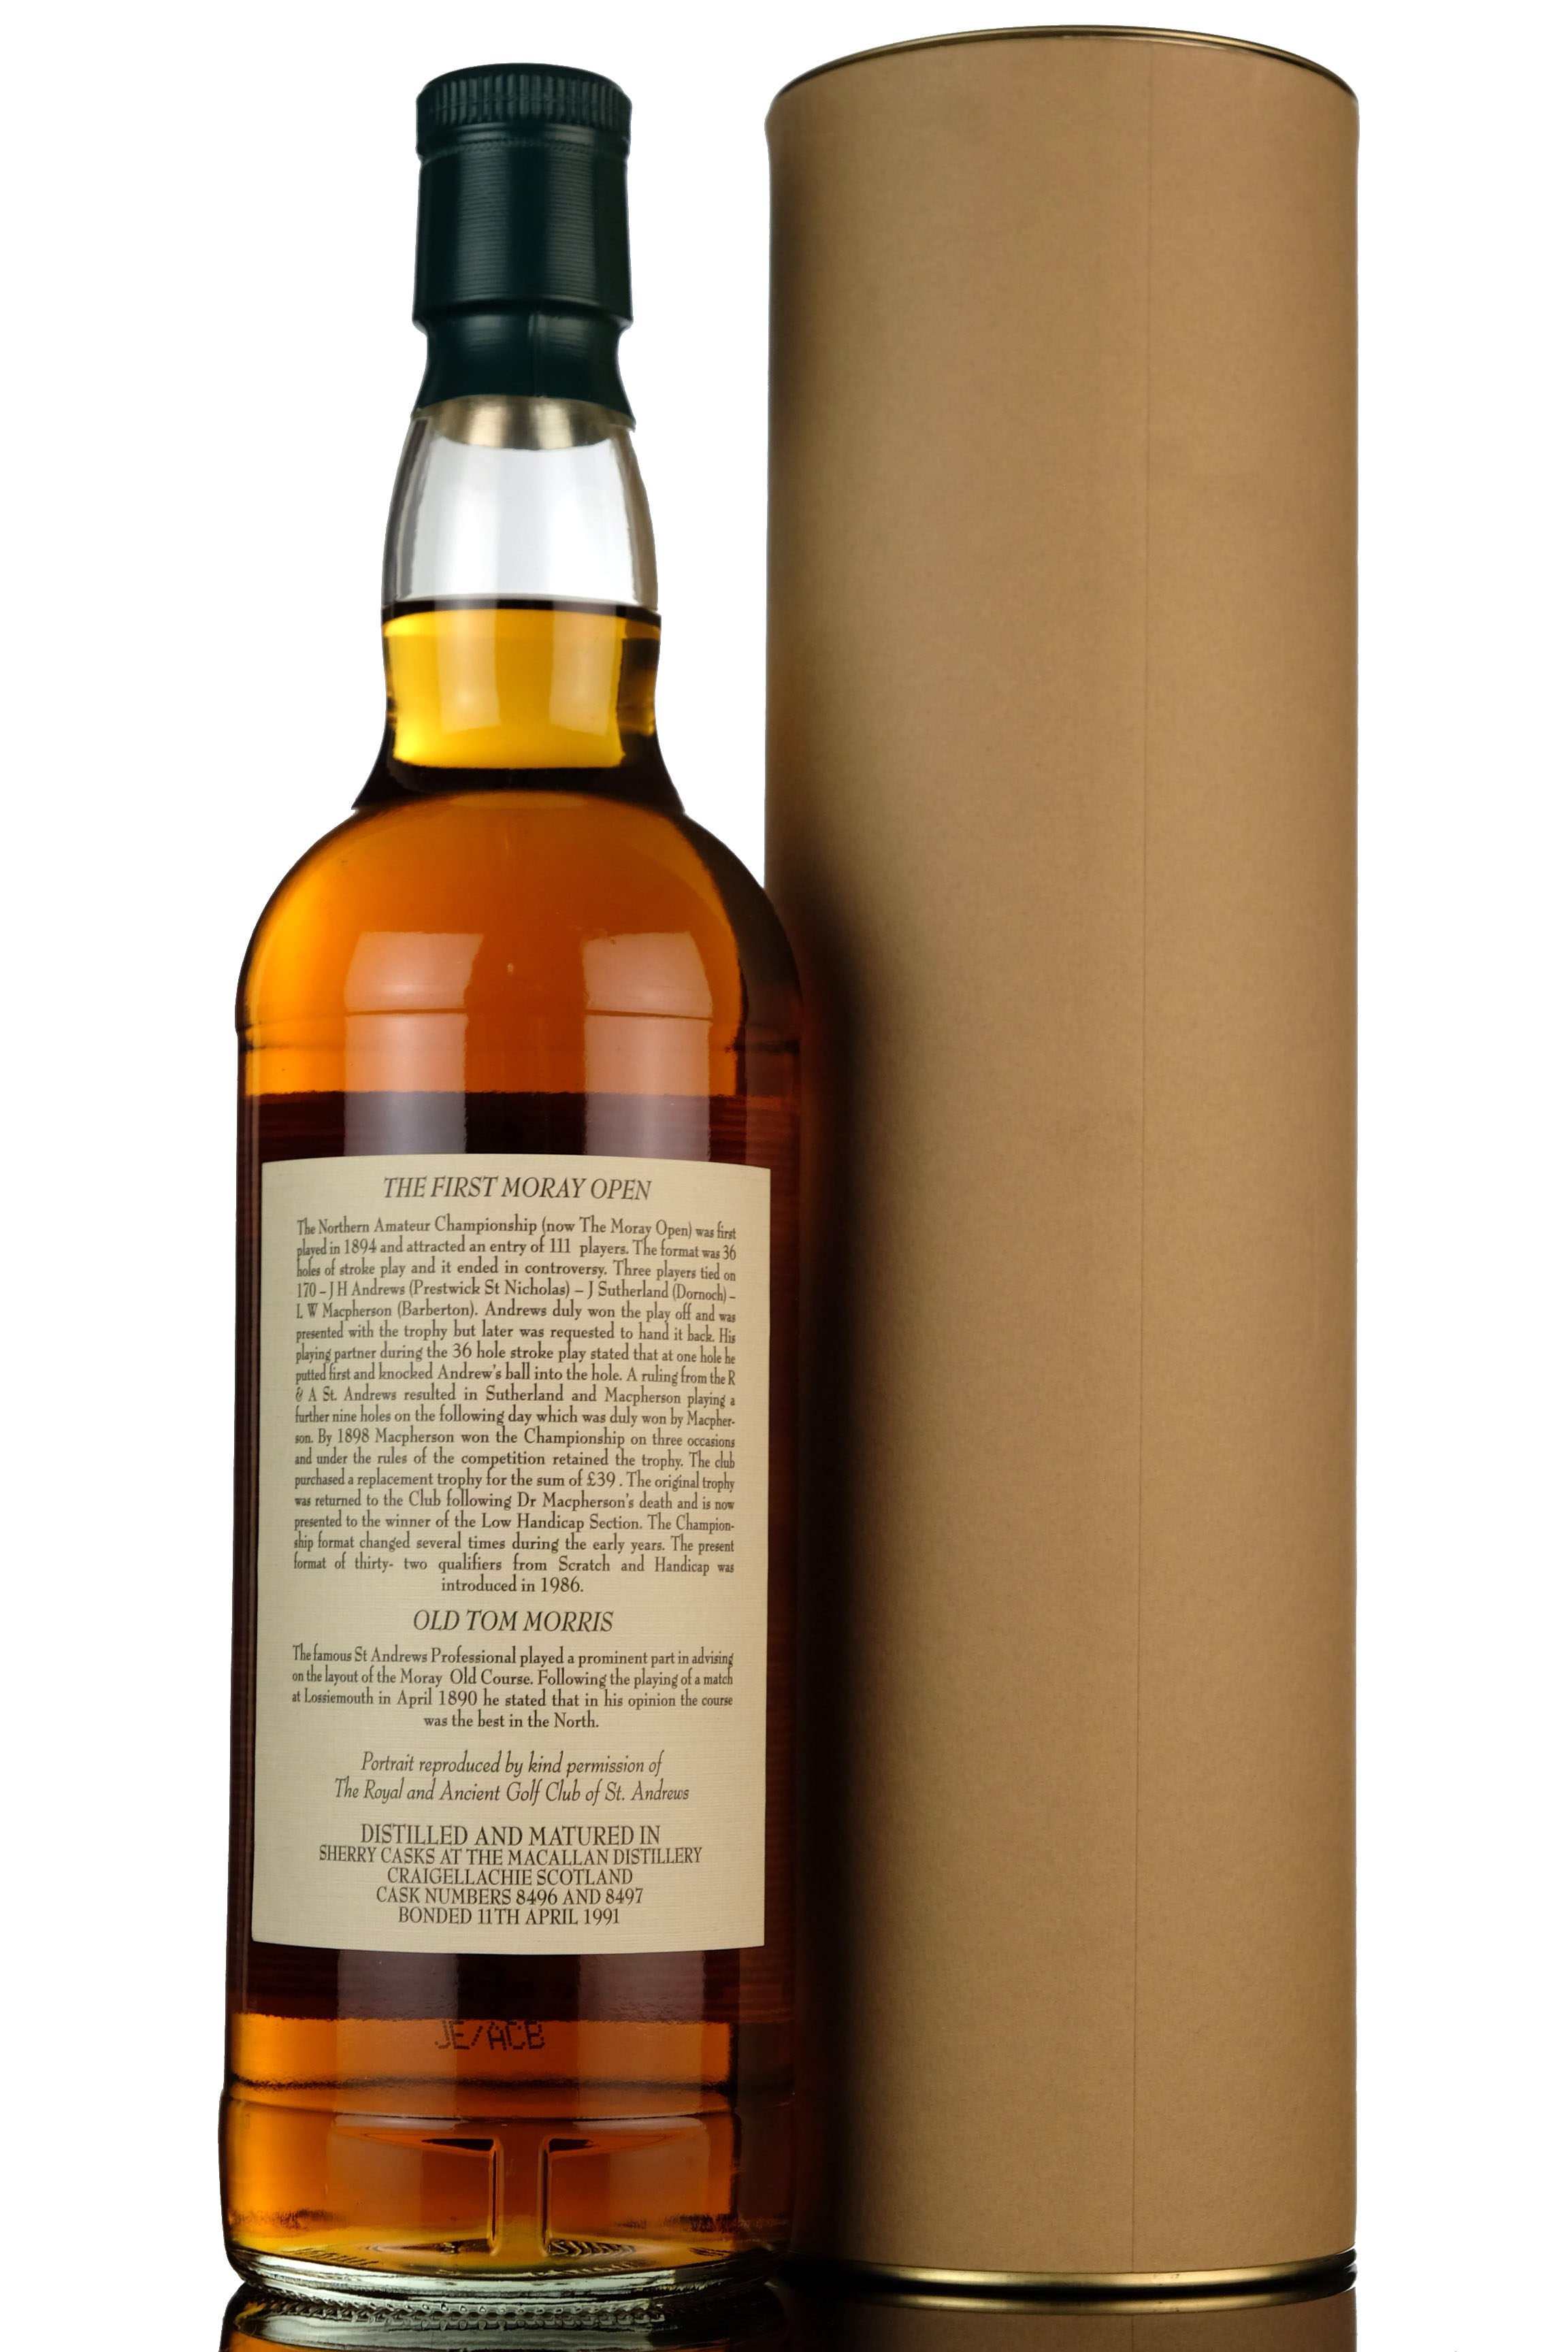 macallan 14 year old - moray open 2005